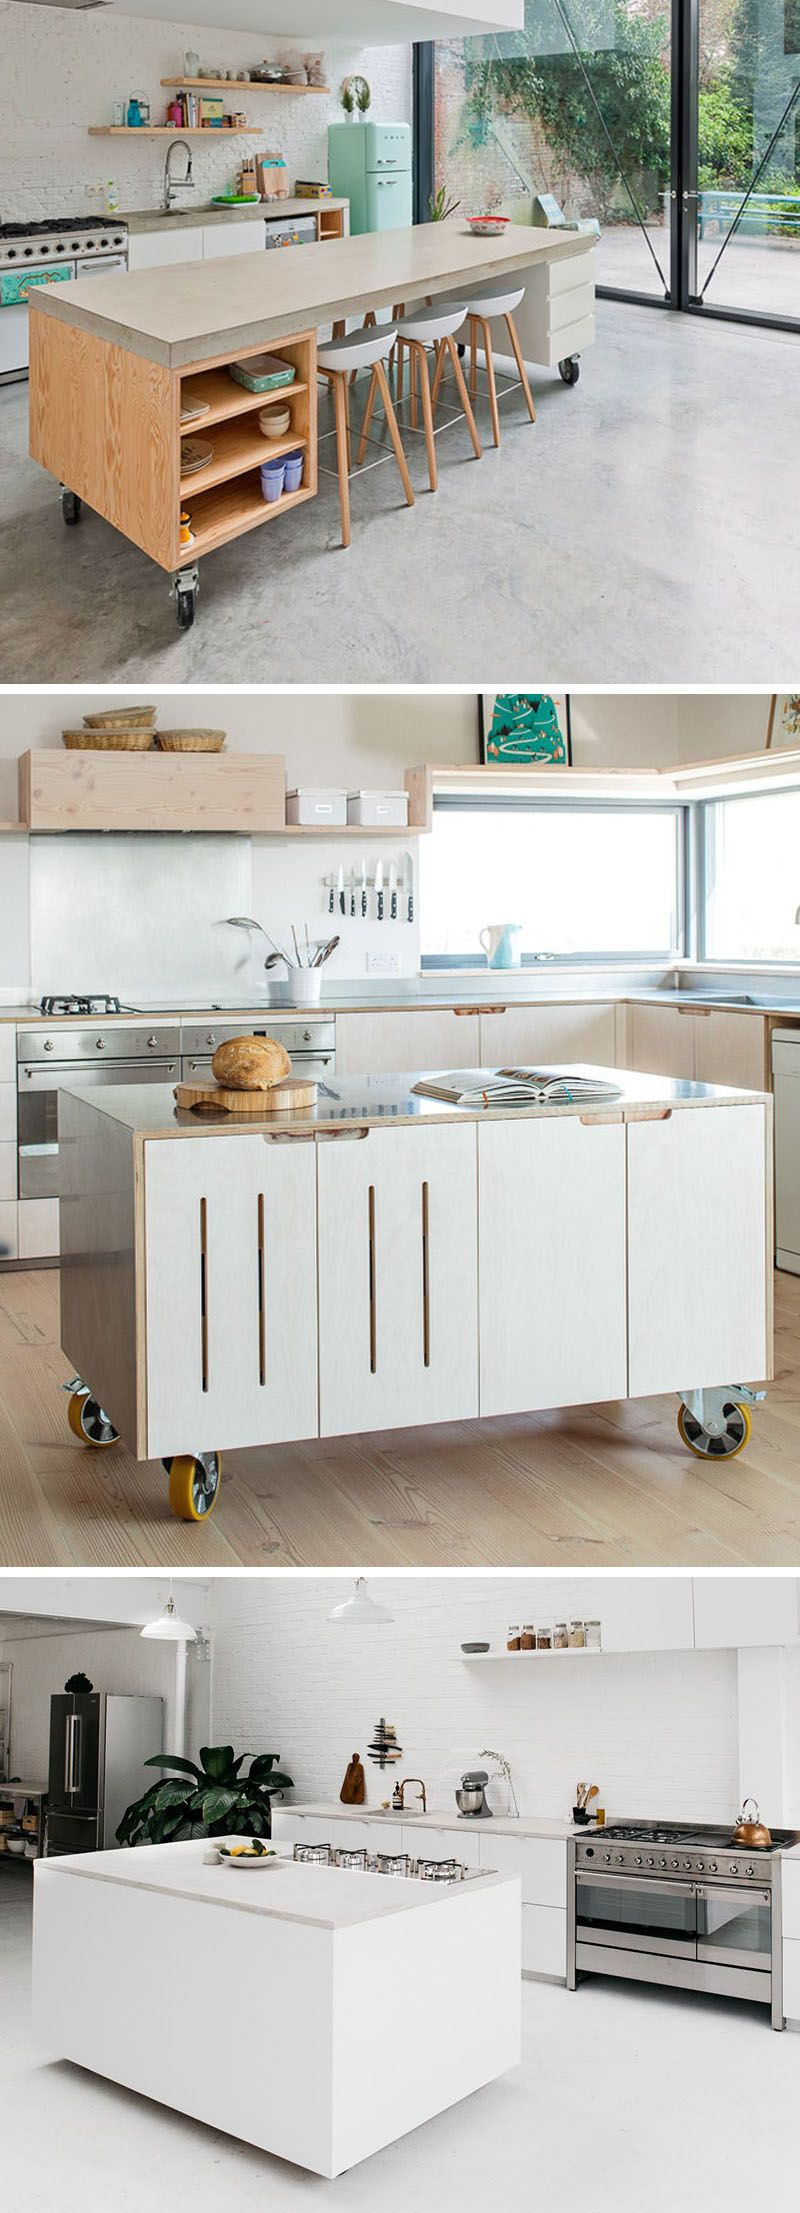 8 Examples Of Kitchens With Movable Islands That Make It Easy To Change The Layout Small Modern Kitchens Mobile Kitchen Island Modern Kitchen Island